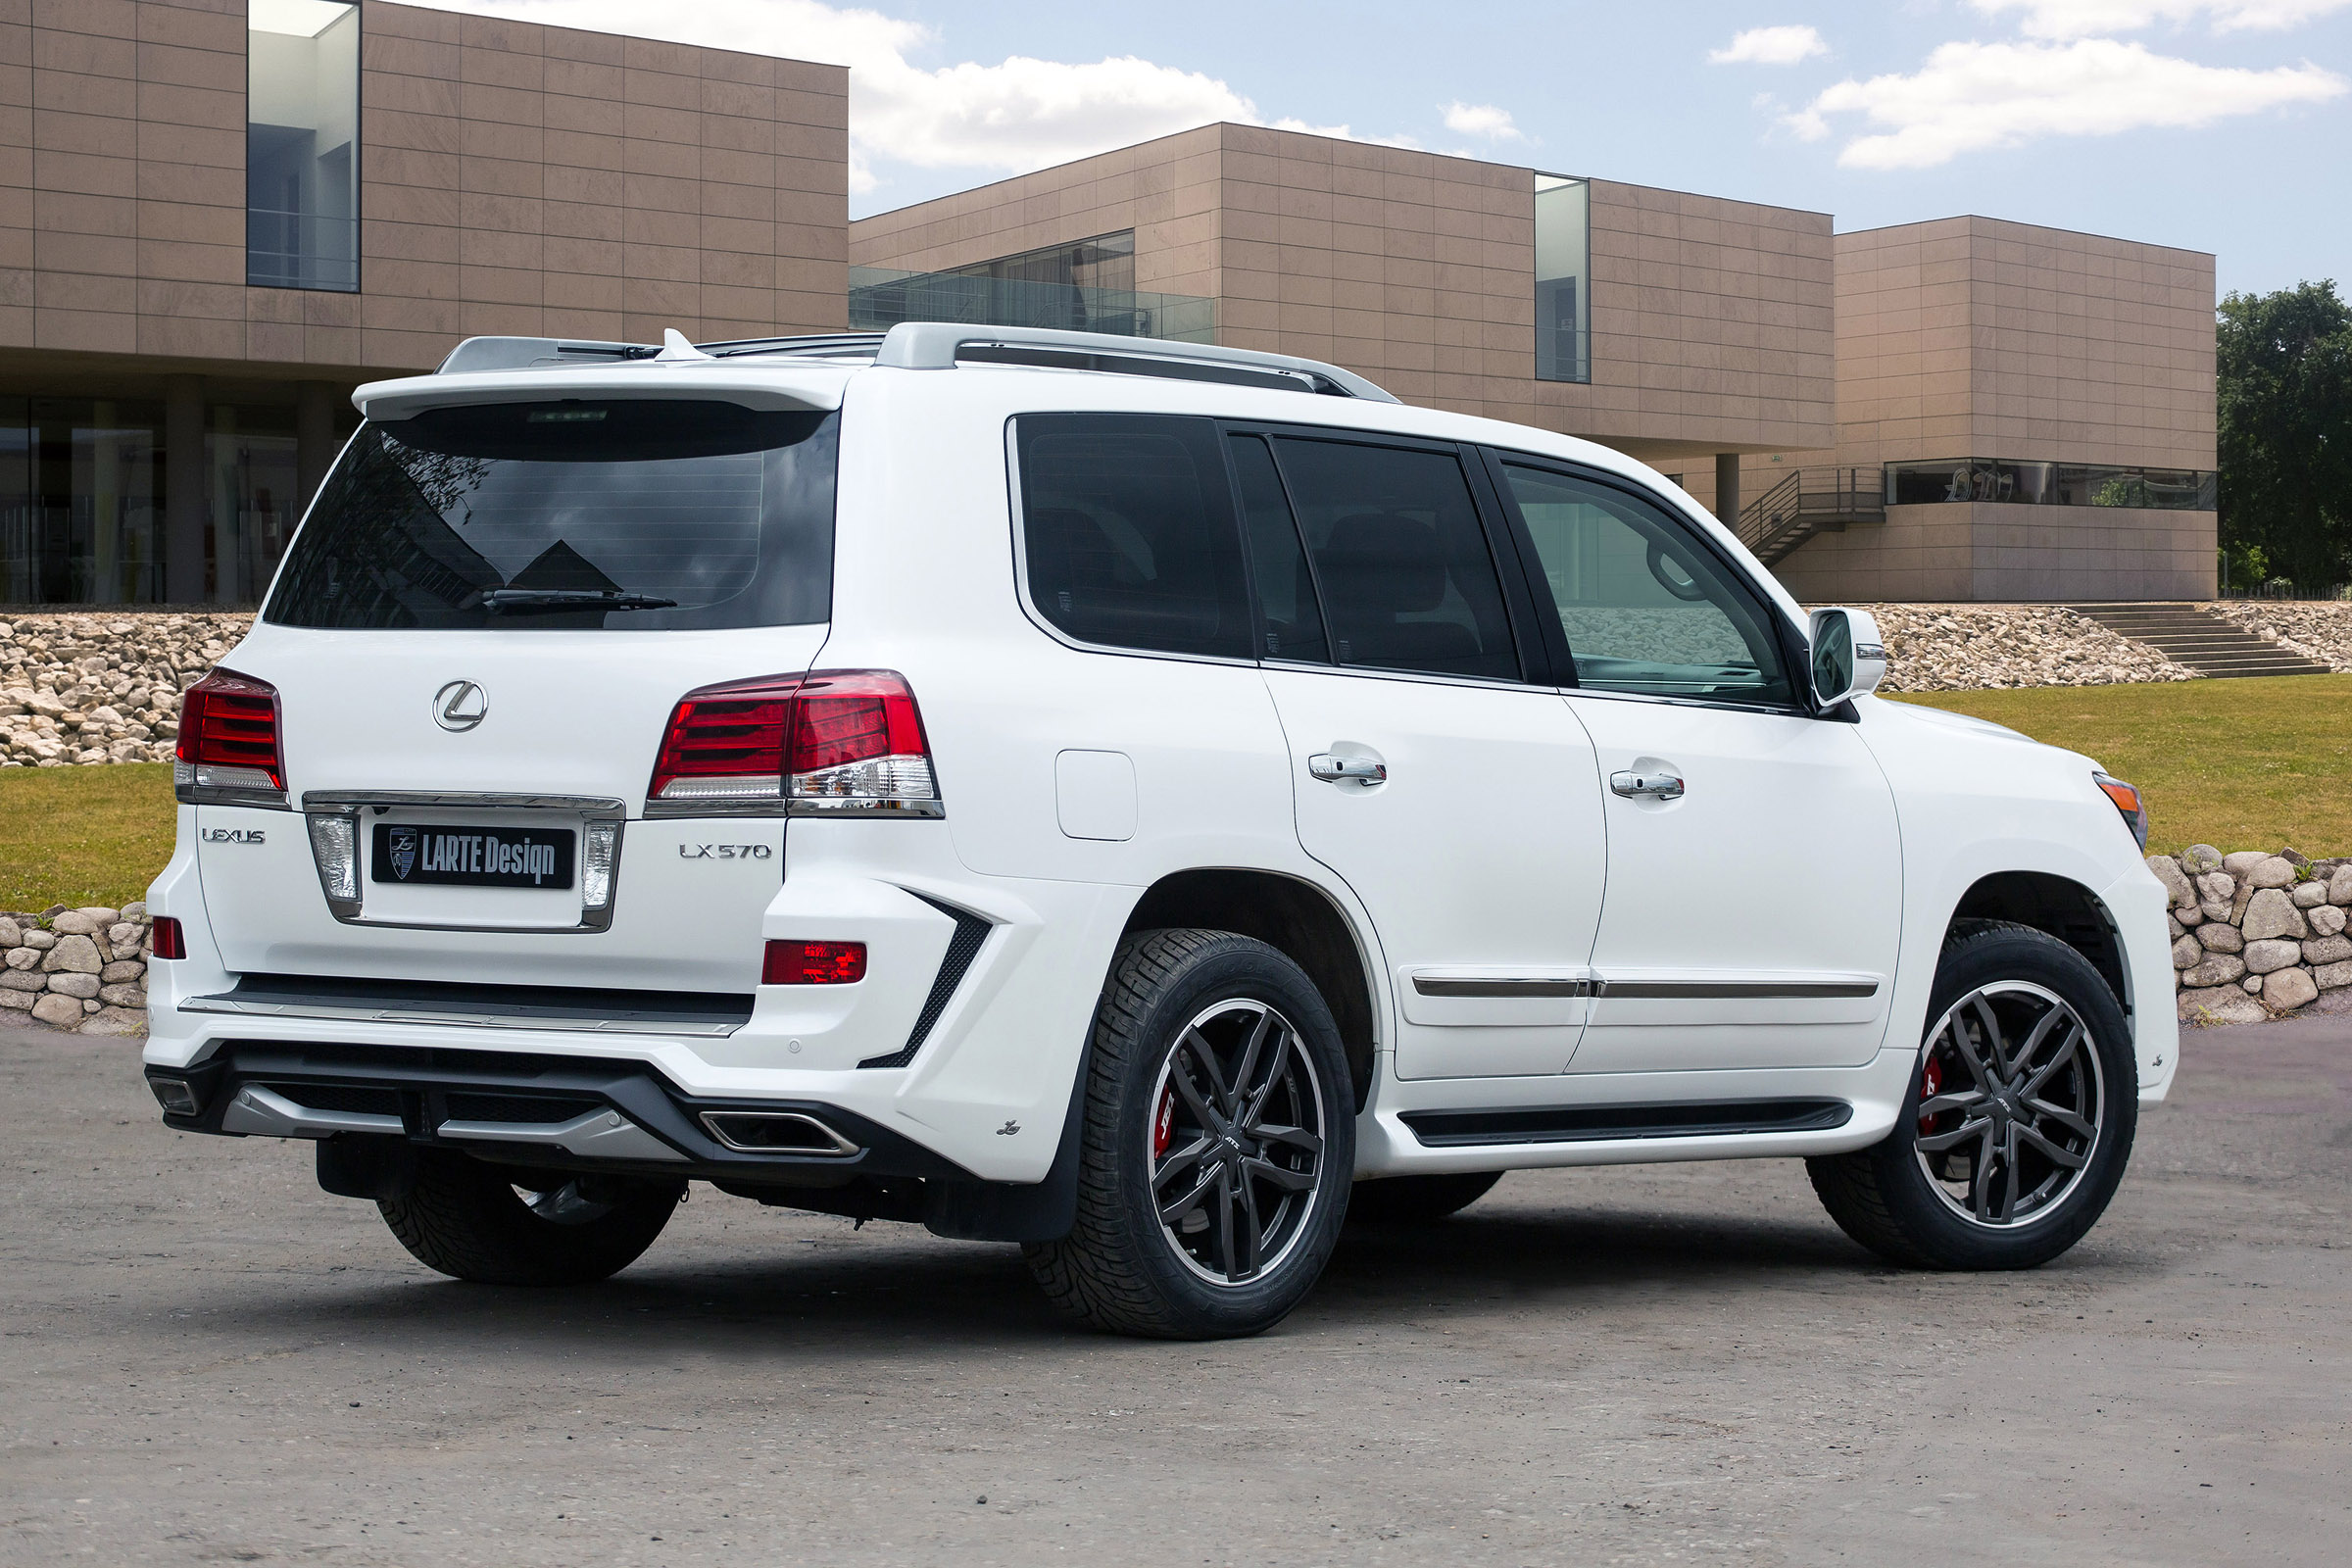 2015 Larte Lexus LX 570 White Alligator